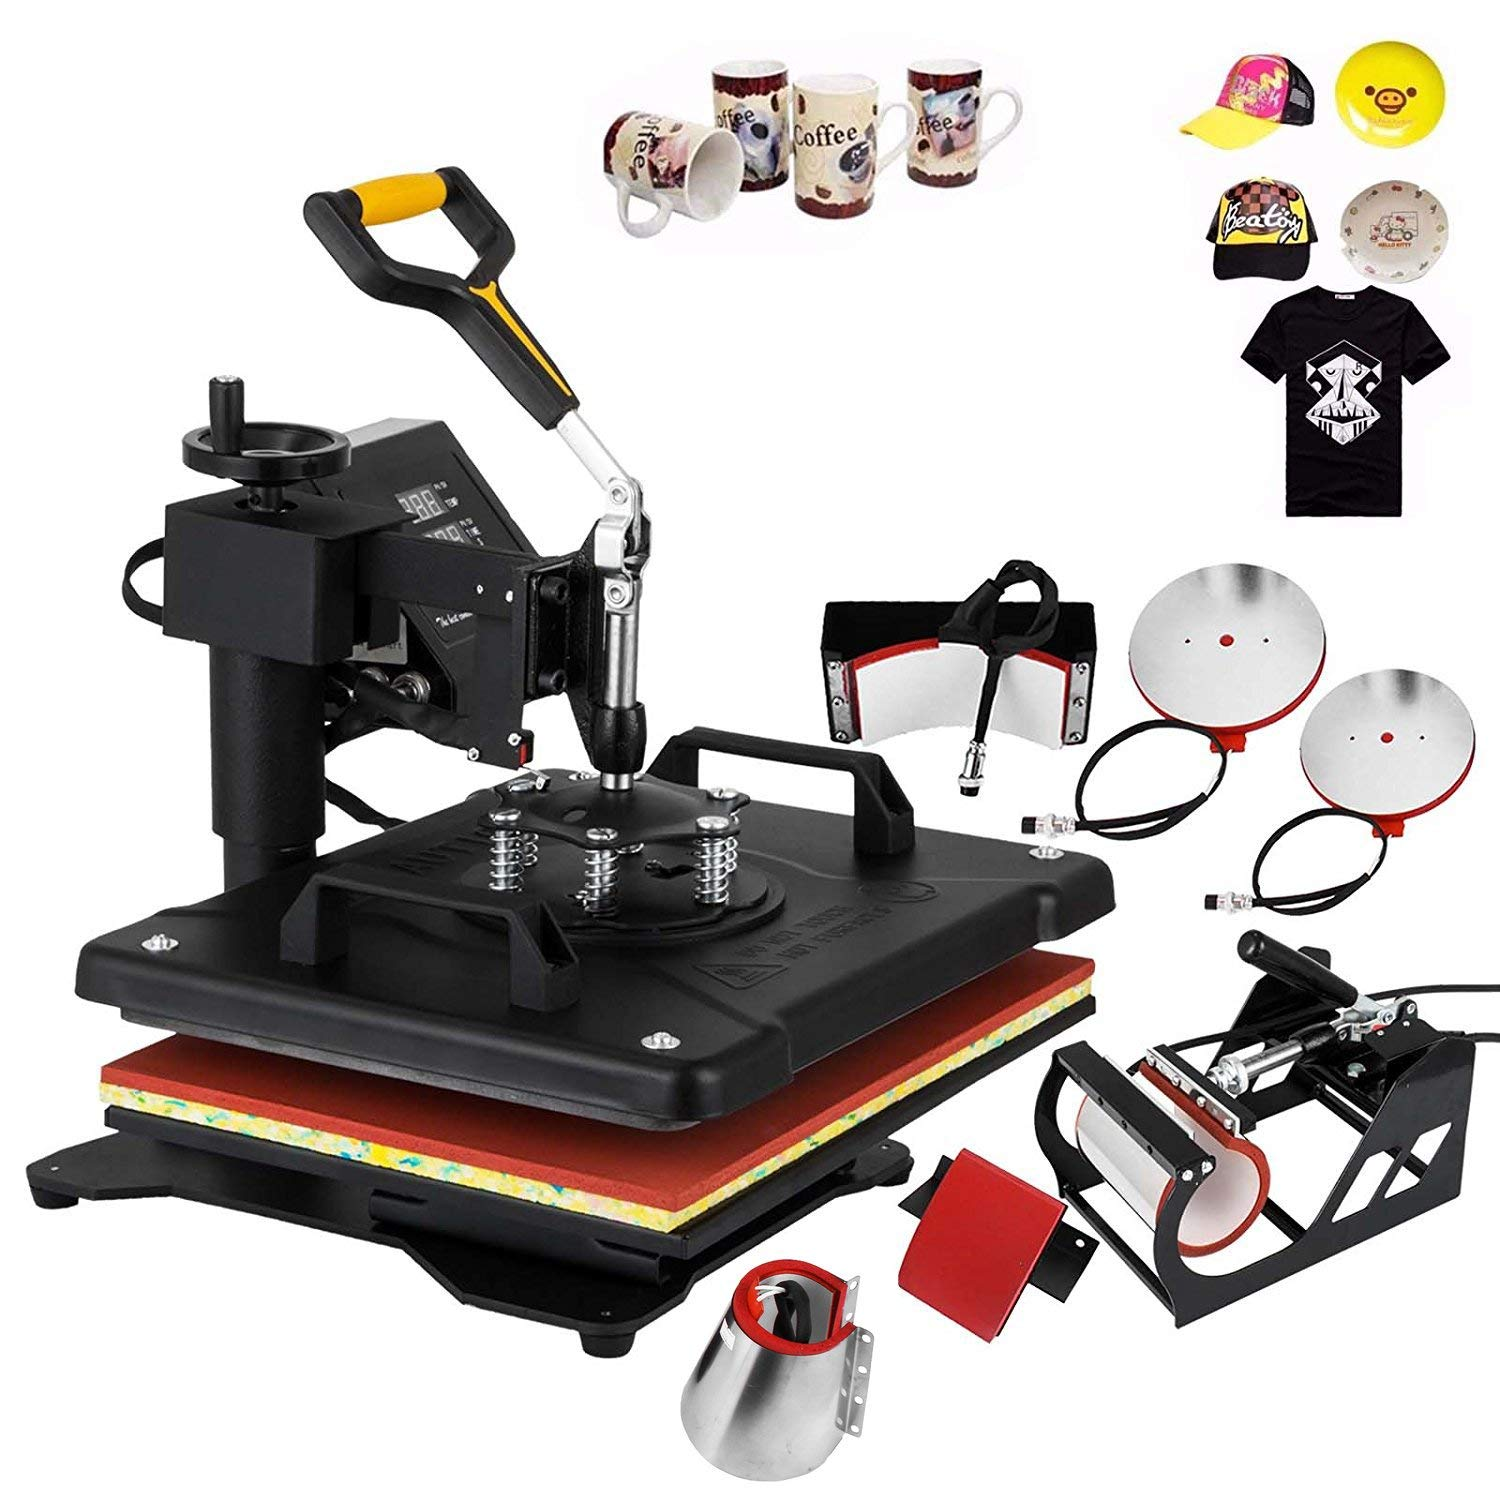 Mophorn Heat Press Machine 12x15 inch T-Shirt Heat Press Transfer Combo Swing-Away Presser Mug Hat Press 6IN1 Digital Multifunction Transfer (6in1 Presser)